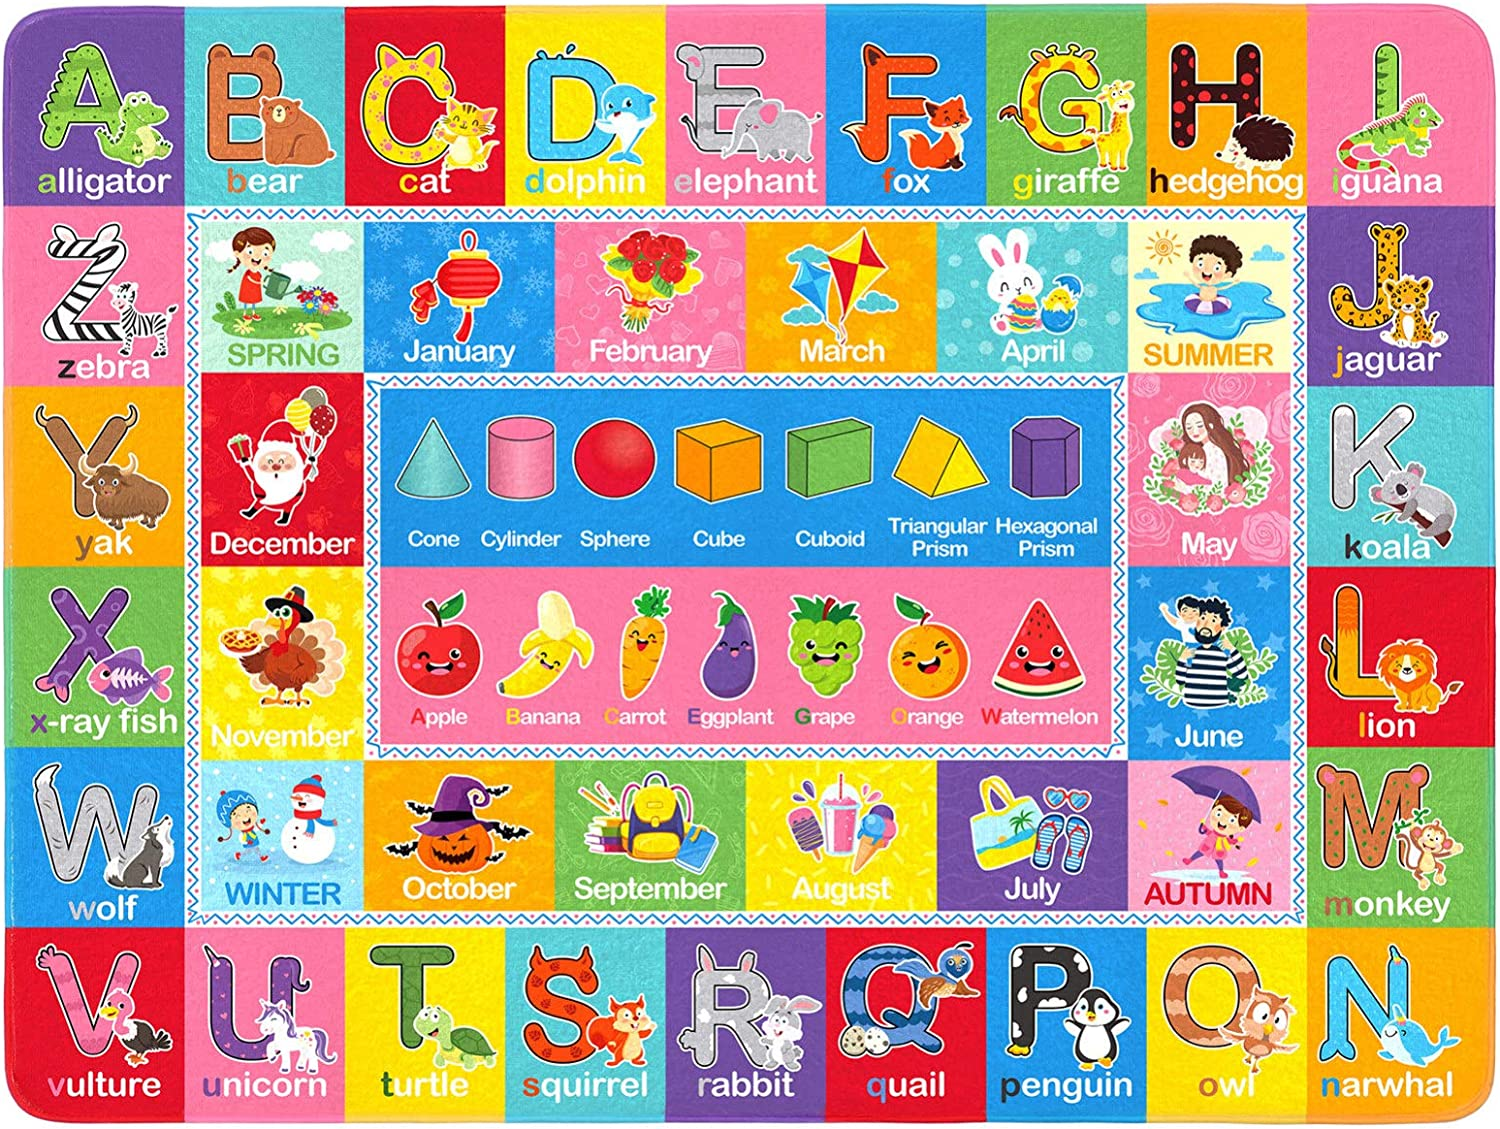 IMIKEYA Kids Floor Mat Playtime Collection ABC Alphabet, Words, Shapes Area Rug Comfortable Kids Educational Rug Play Mat for Bedroom Playroom, 78.7x59 in